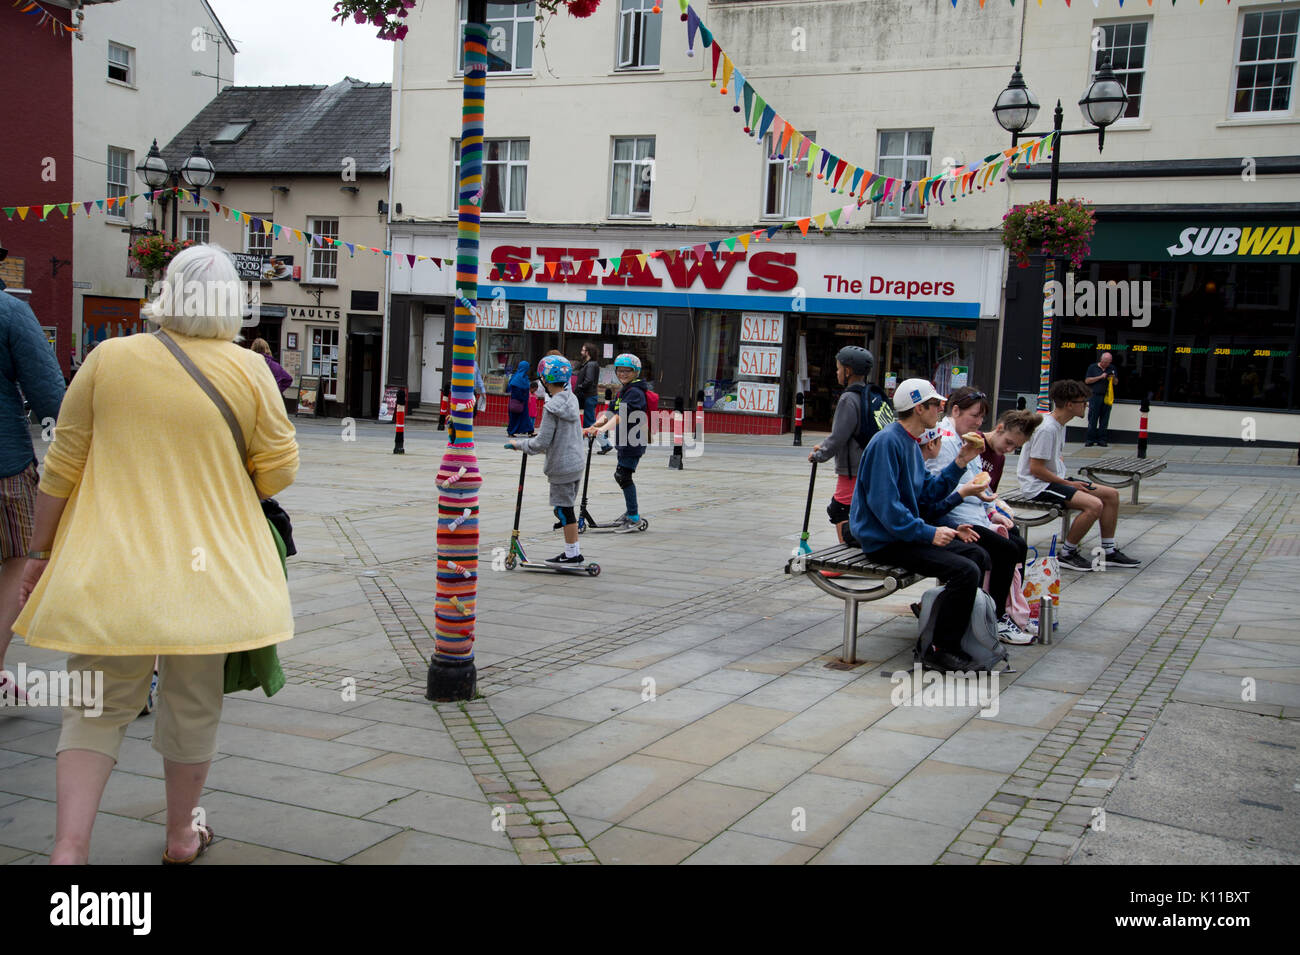 West Wales. Haverford West. Breaking Out the Gallery - outdoor art, part of town regeneration and celebration. - Stock Image